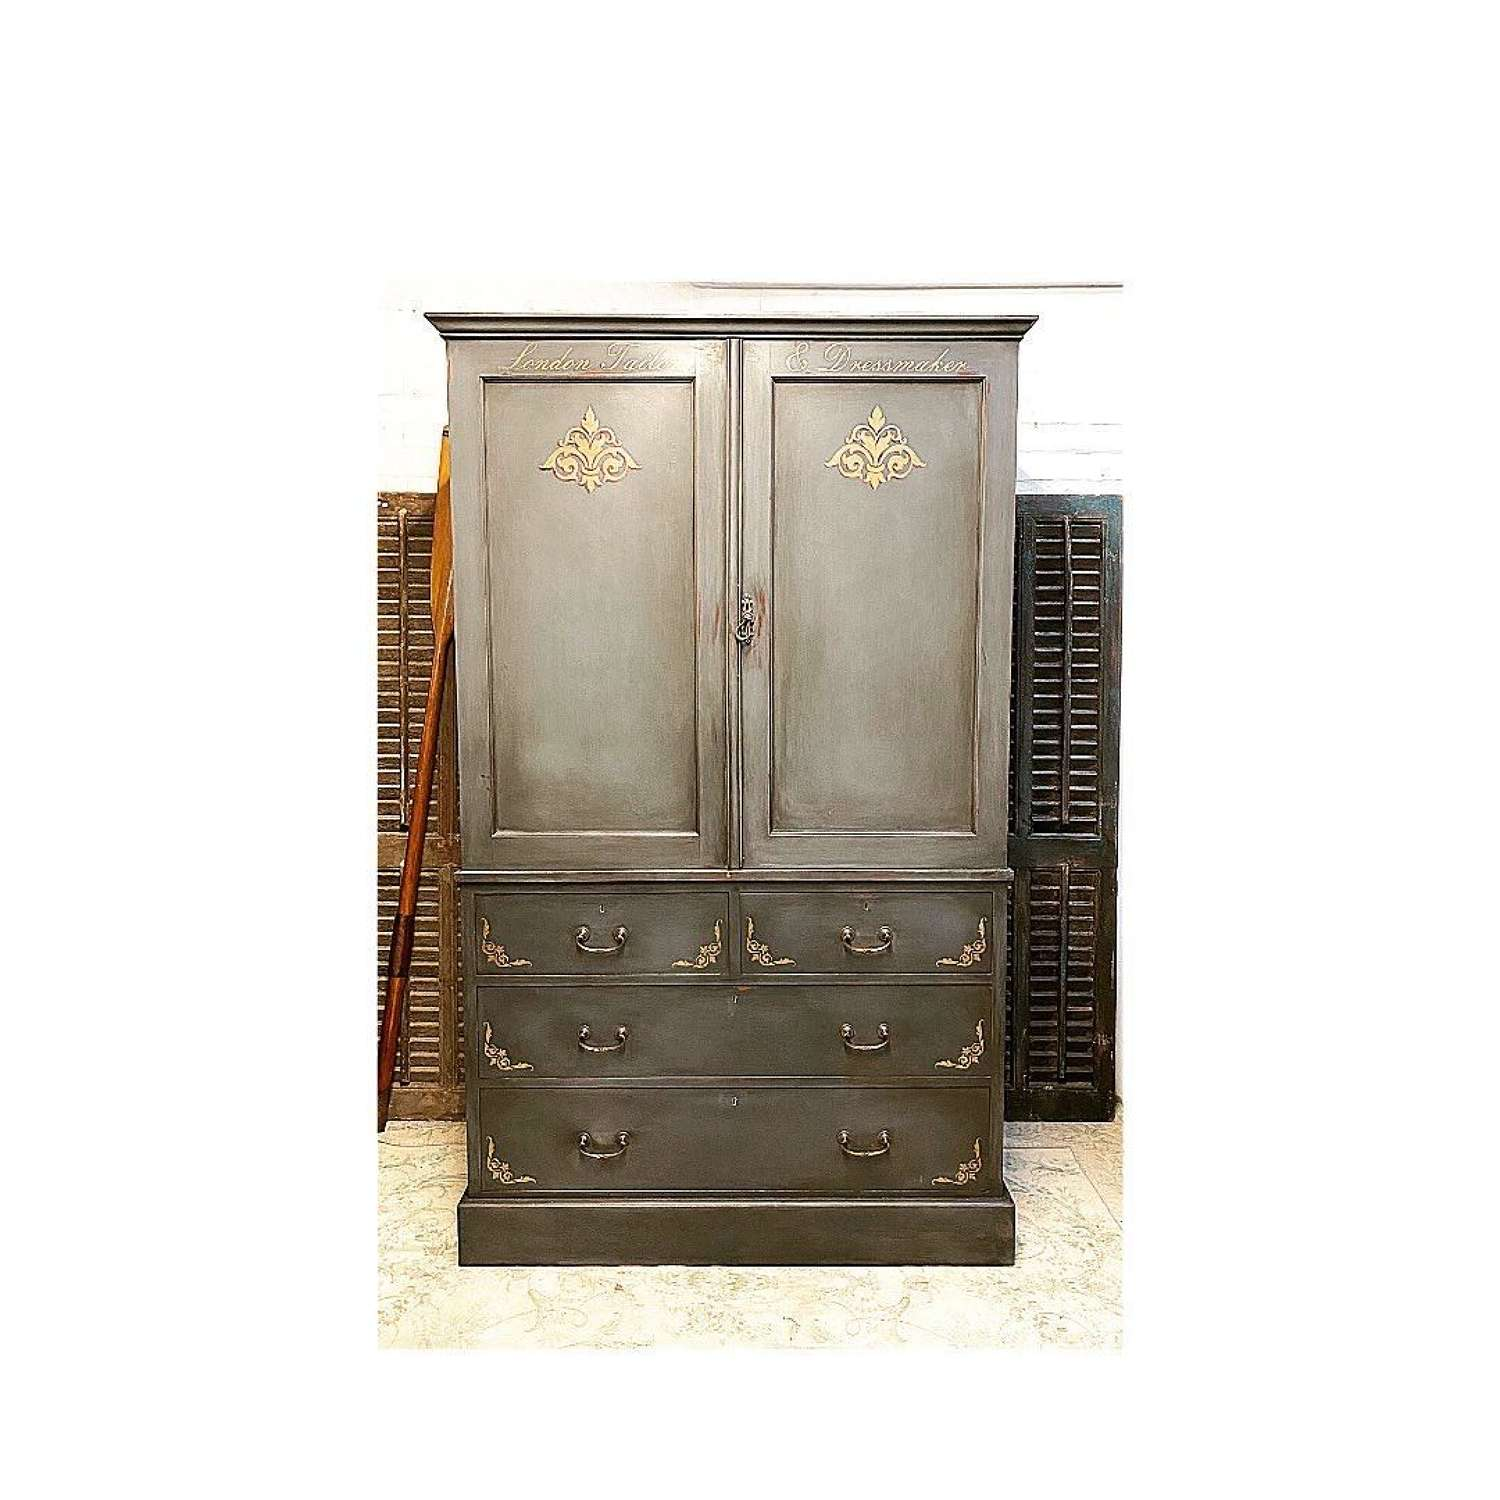 Victorian linen press. Painted and sign written for a modern yet sym